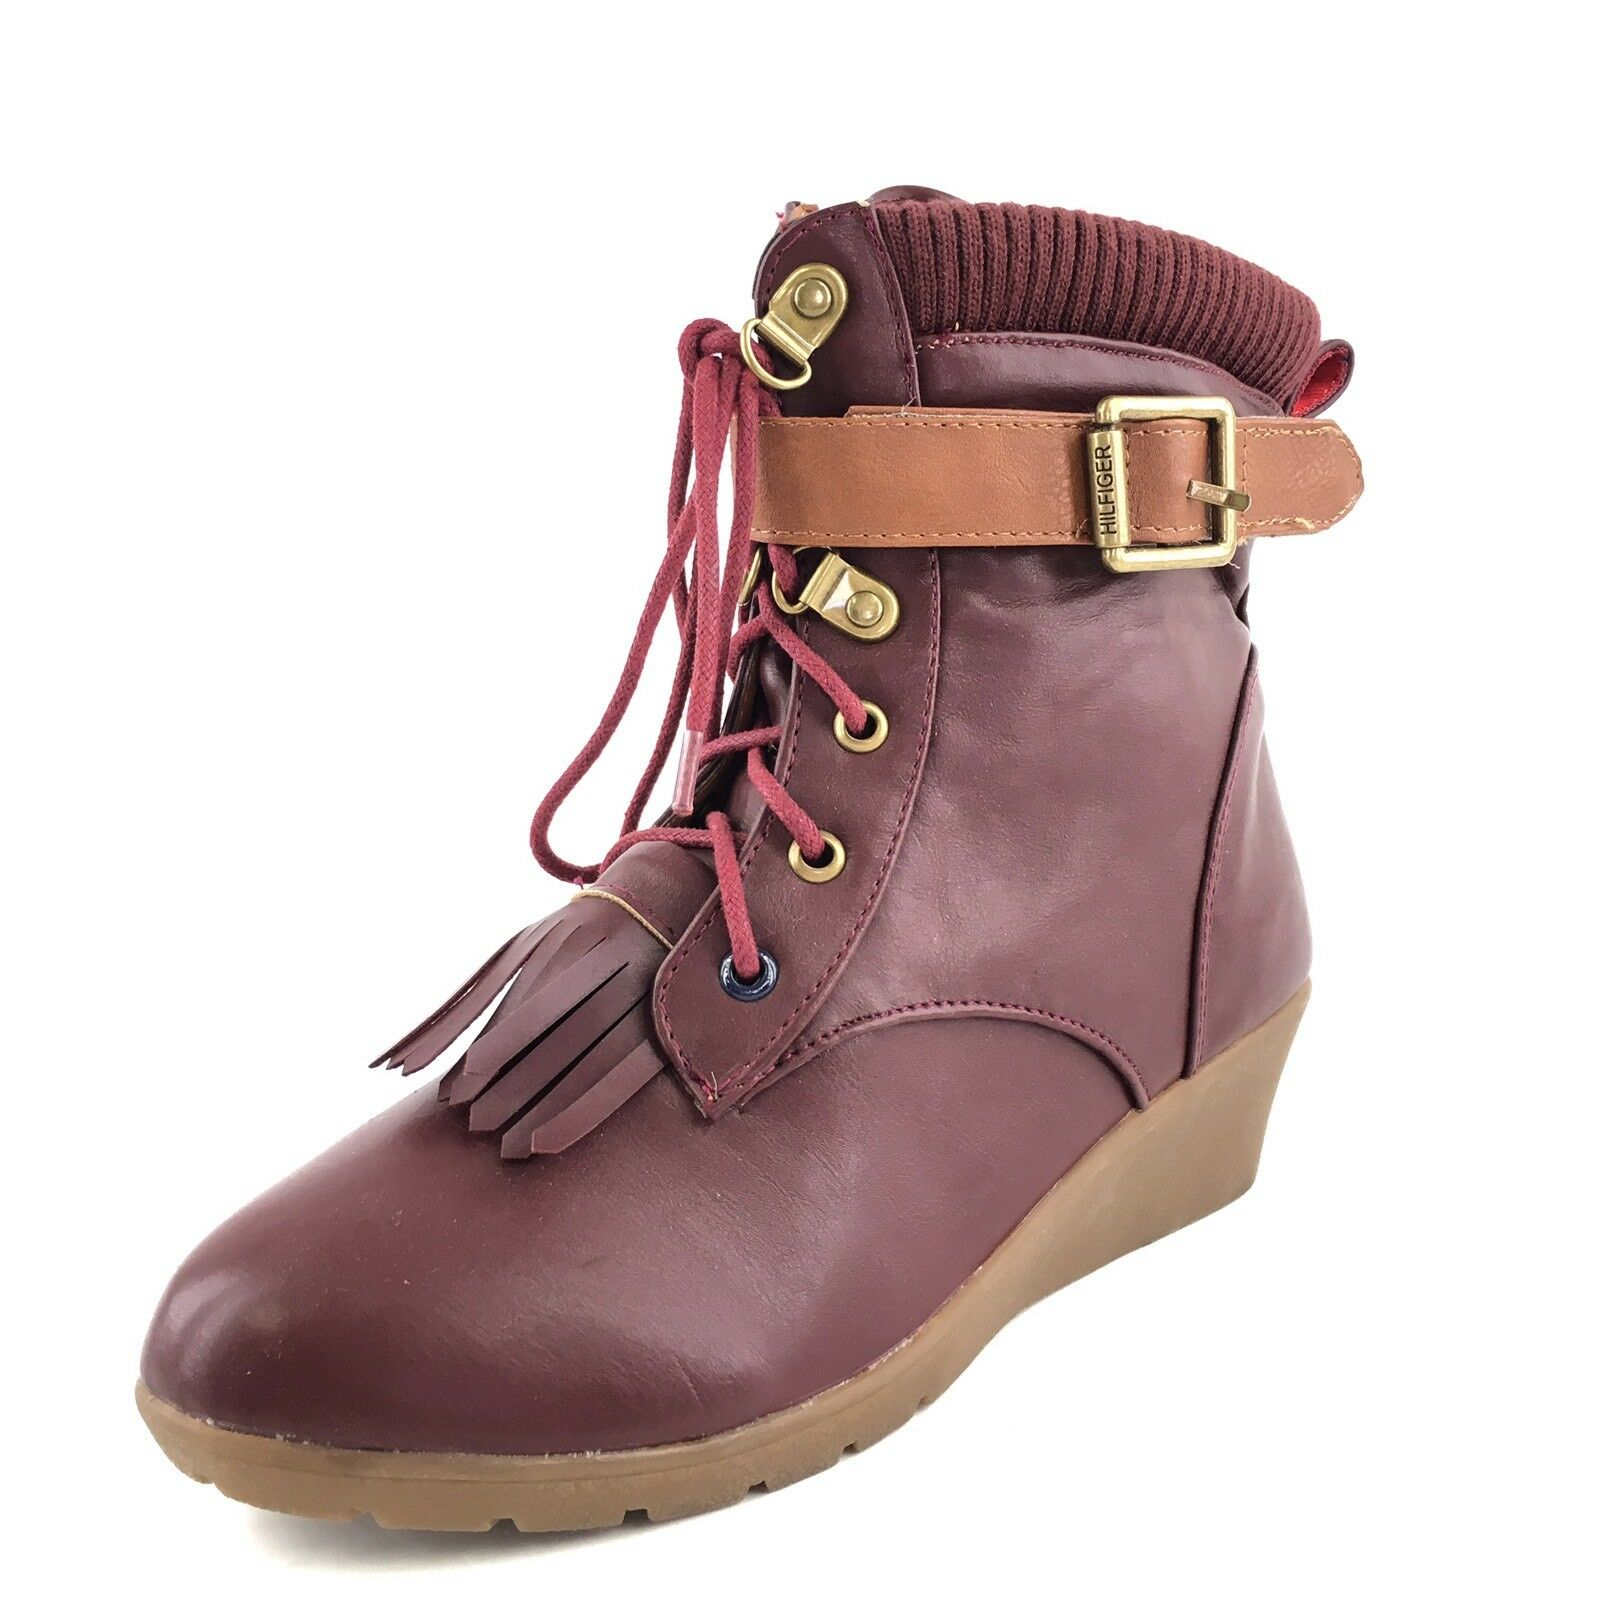 Tommy Hilfiger ARIEL Burgundy Lace Up Fashion Ankle Boots Women's Size 5 M*